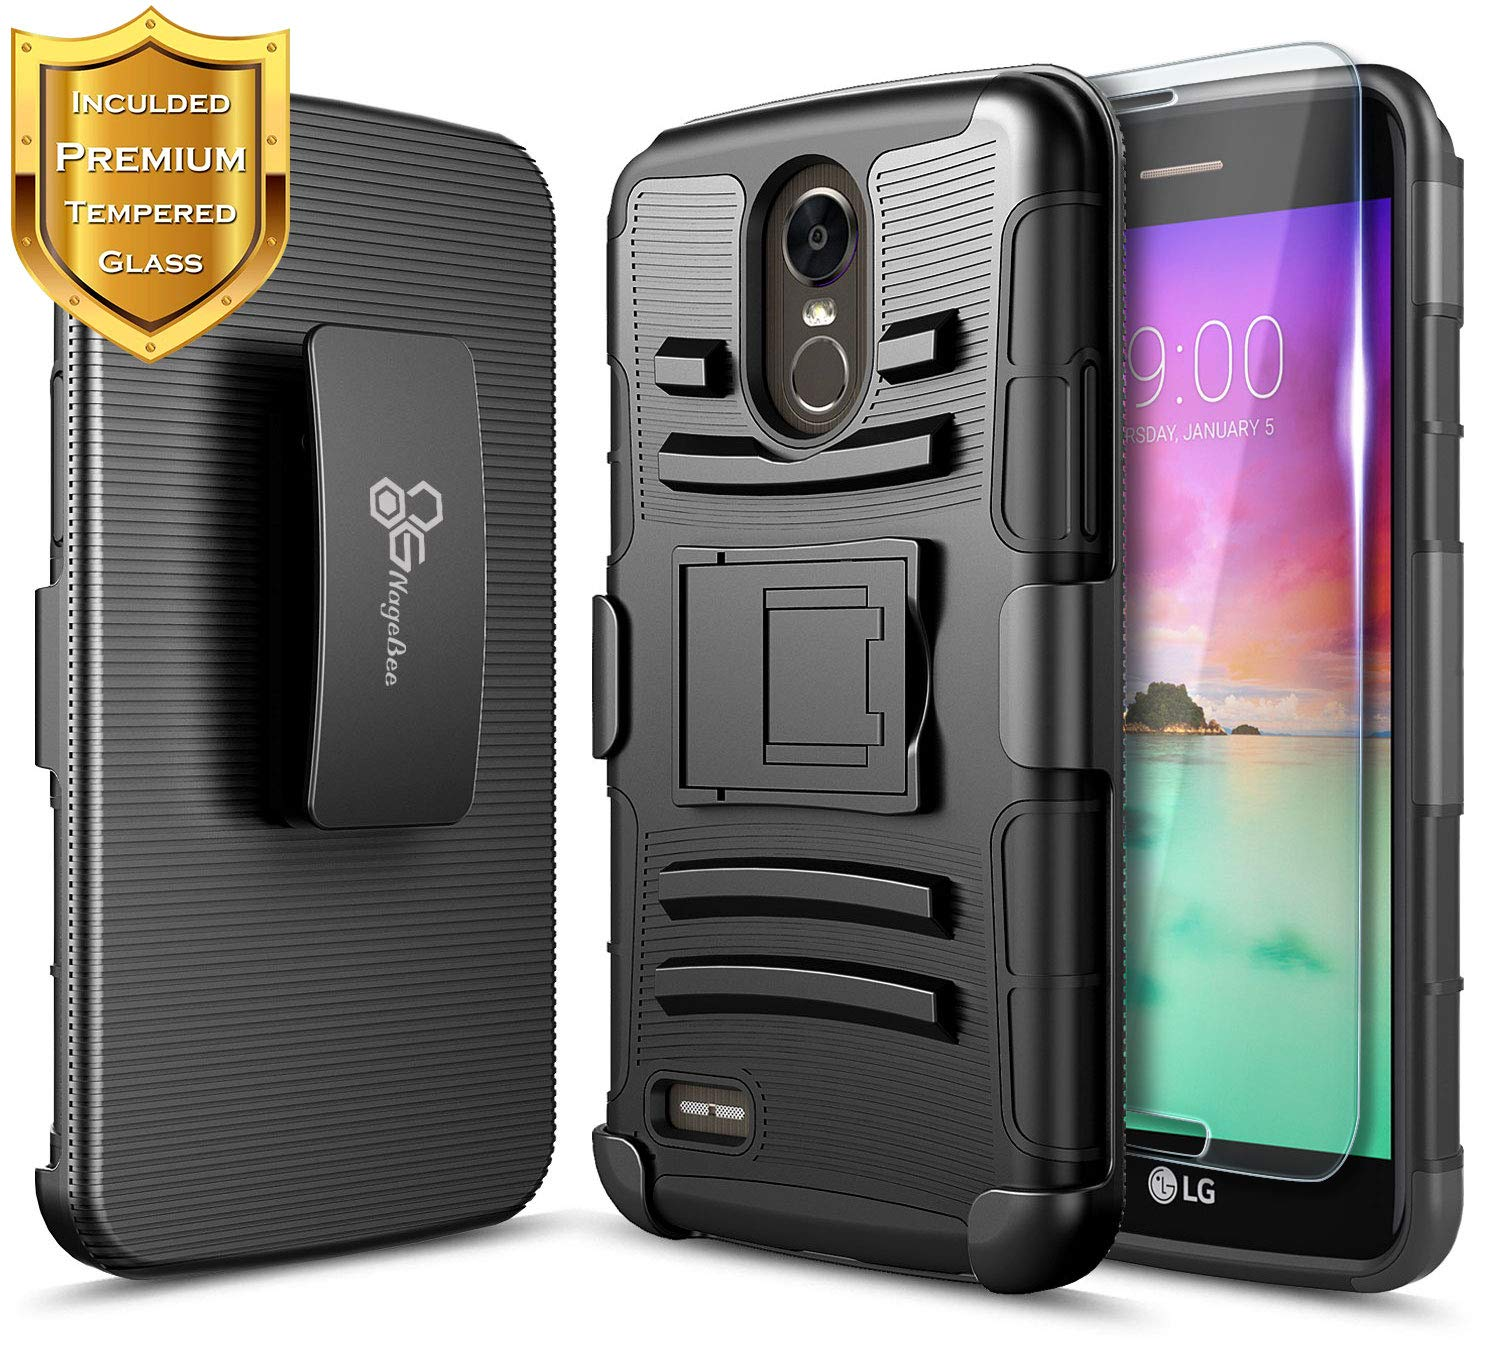 LG Stylo 3 Case (LS777), LG Stylo 3 Plus/LG Stylus 3 Belt Clip Holster Case with Tempered Glass Screen Protector, NageBee Defender Heavy Duty Shockproof Kickstand Combo Rugged Durable Case -Black